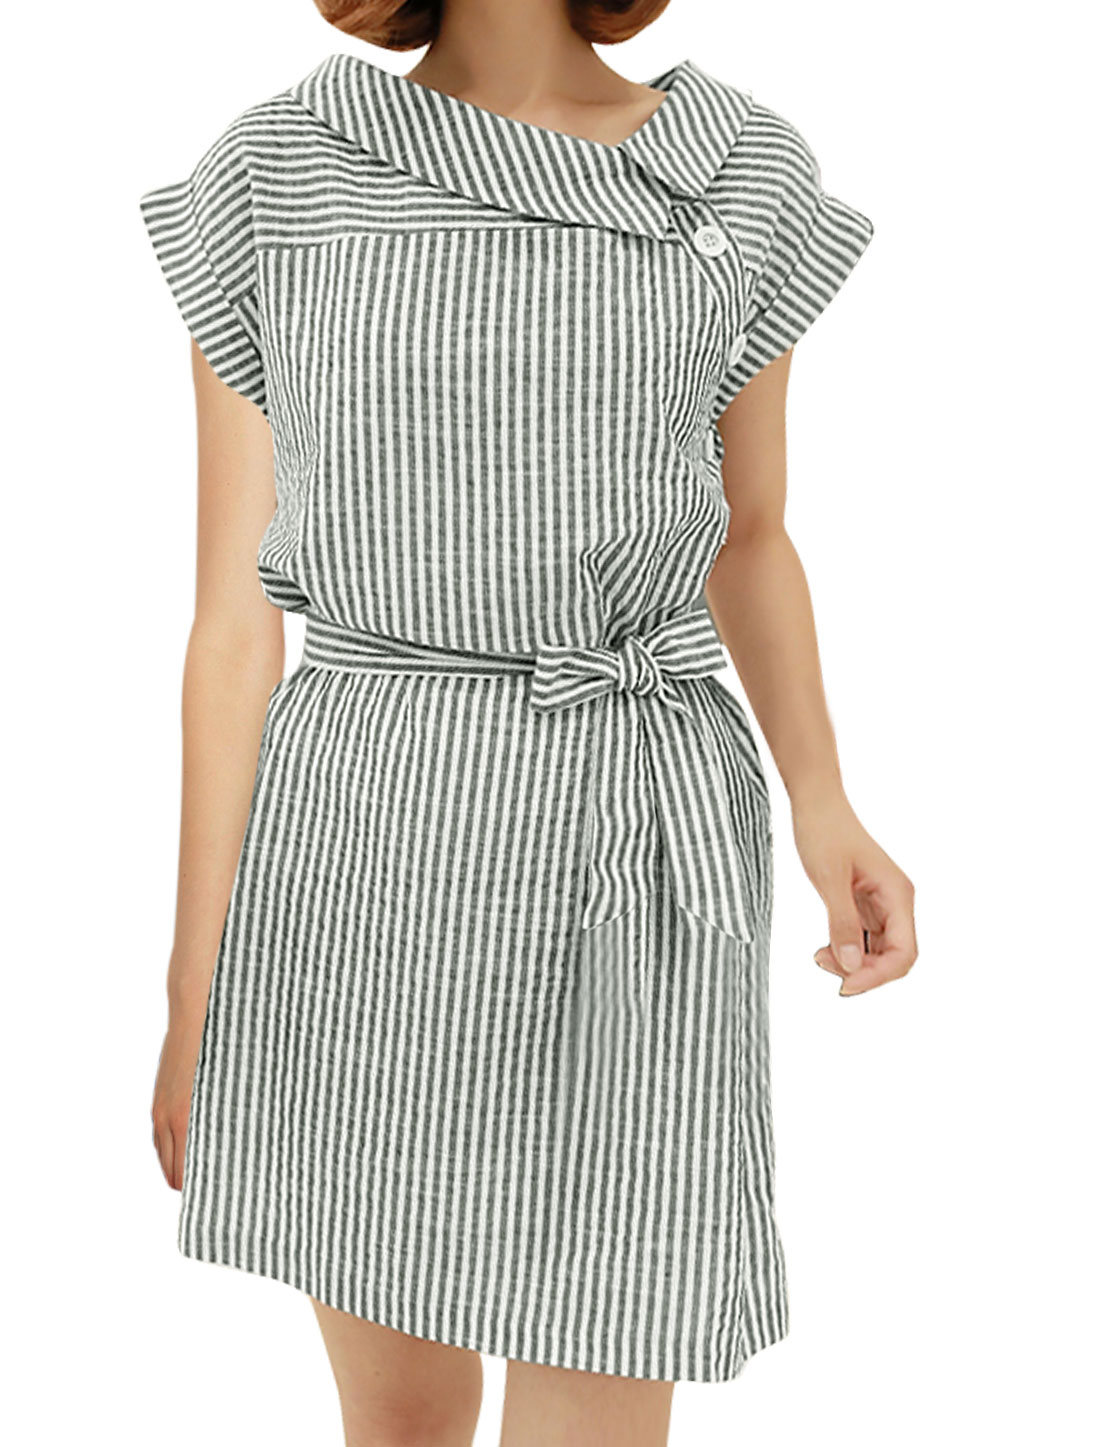 Women Turn Down Collar Cuffed Sleeves Stripes Tunic Shirt Dress Gray XS